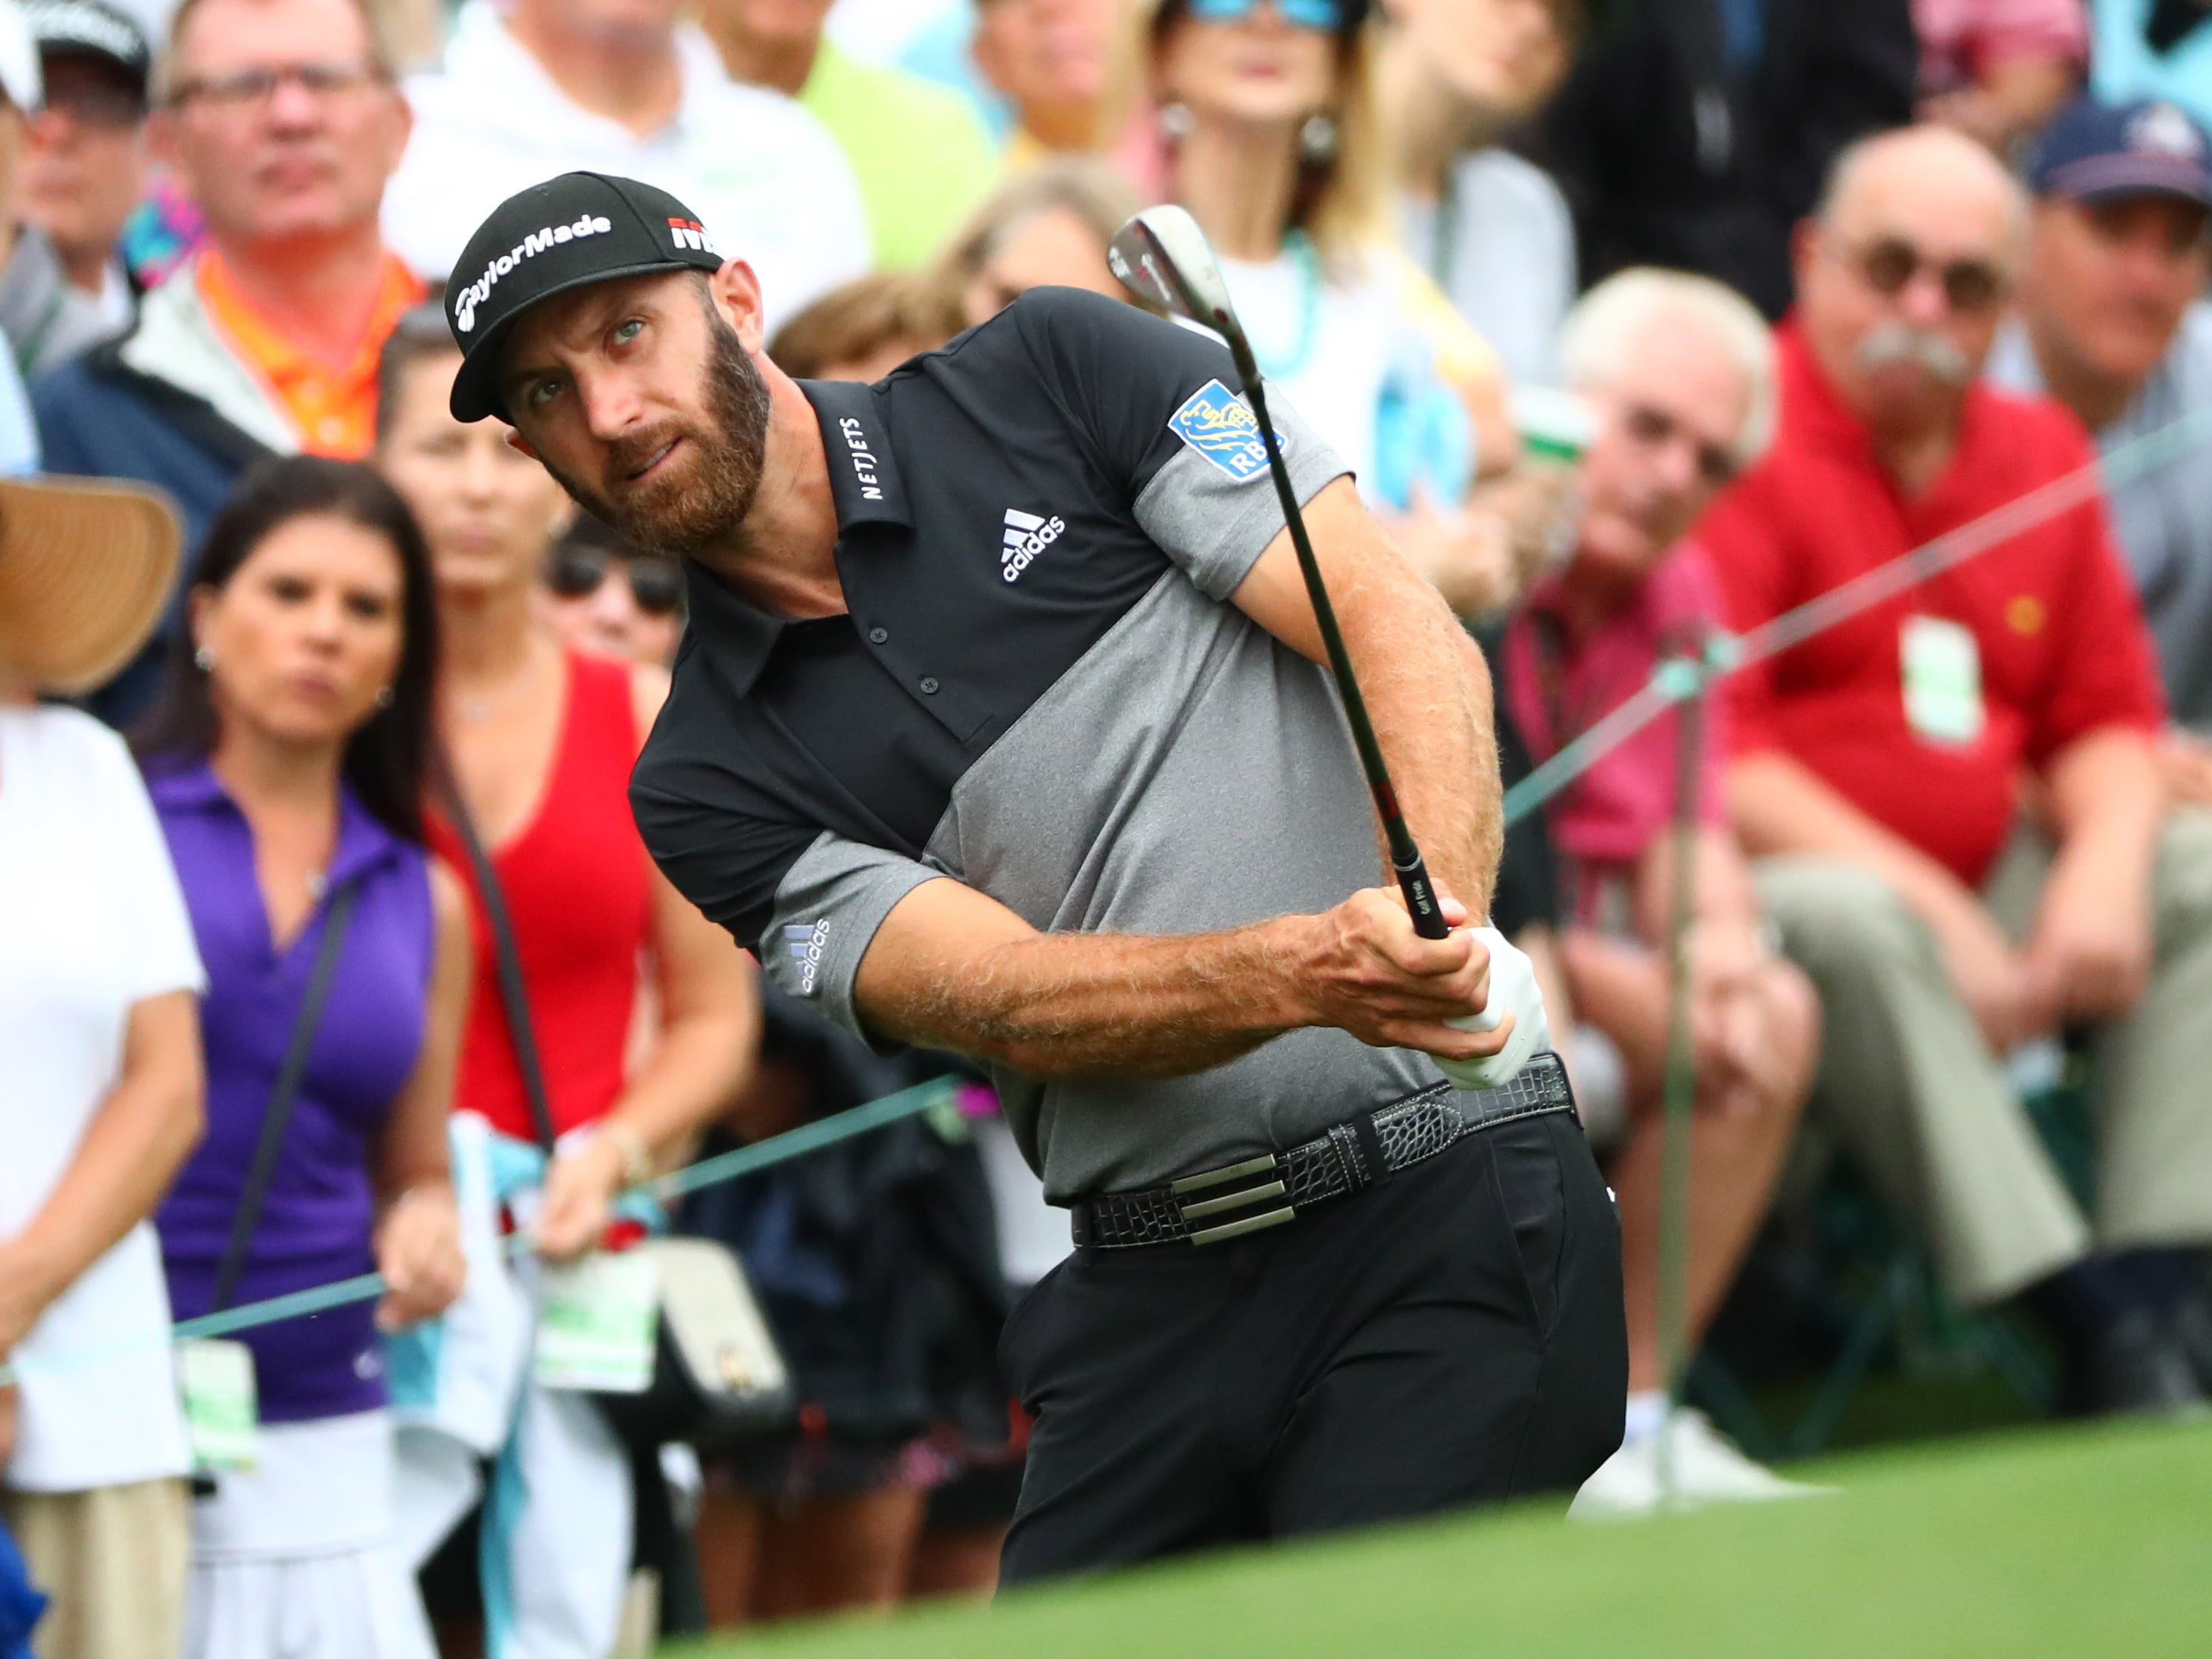 Dustin Johnson chips onto the second green.